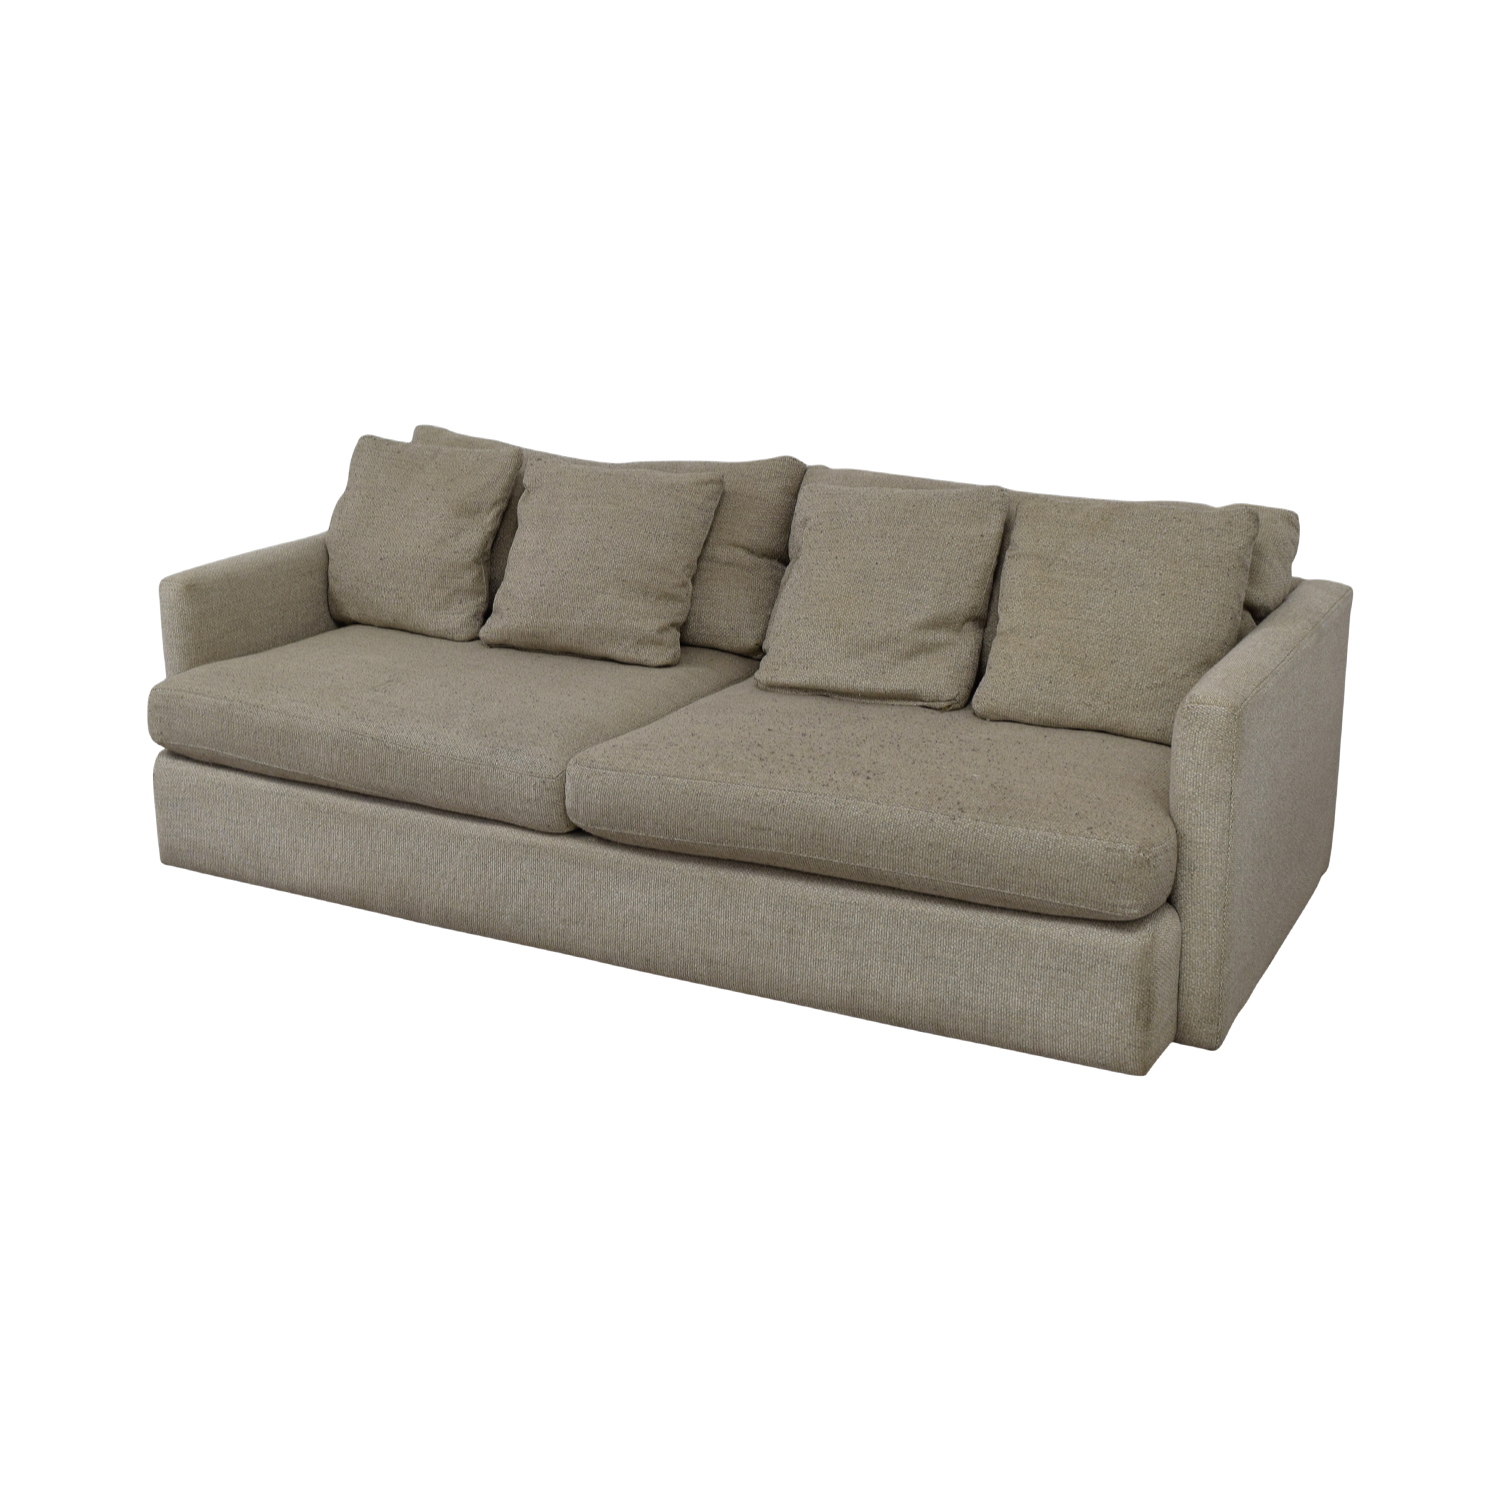 Crate & Barrel Crate & Barrel Cream Two-Cushion Sofa for sale